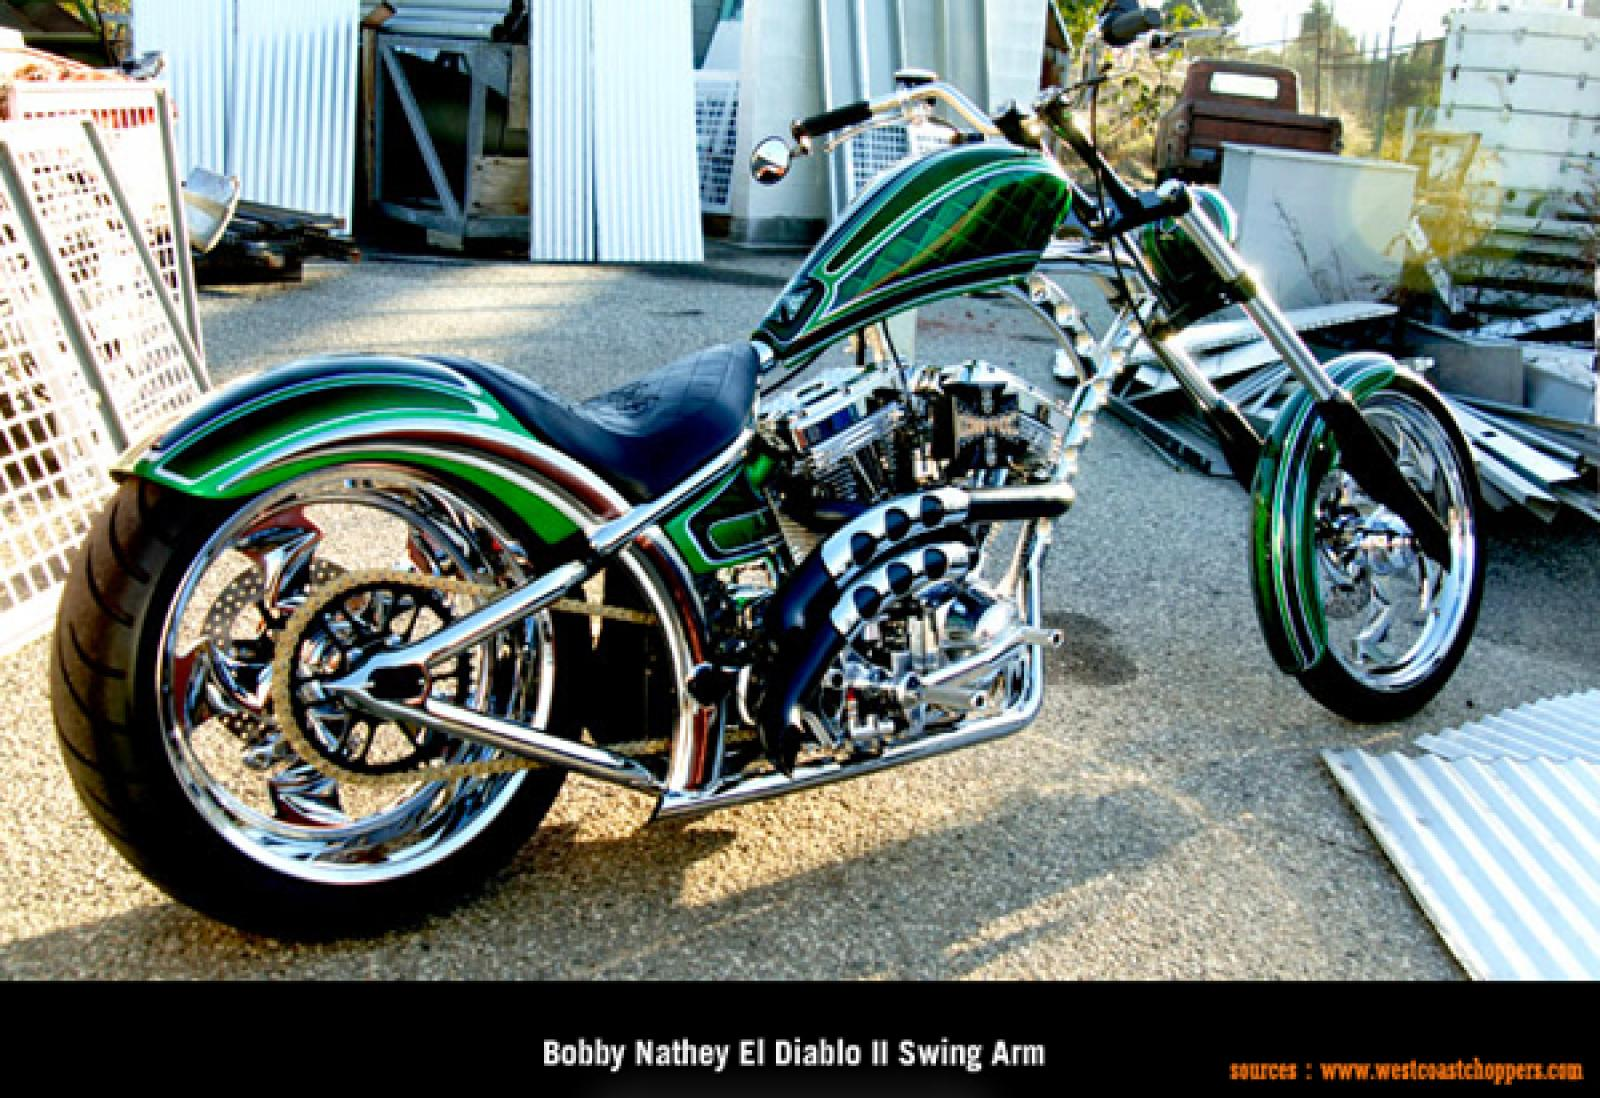 West Coast Choppers El Diablo Swingarm 2010 wallpapers #141718